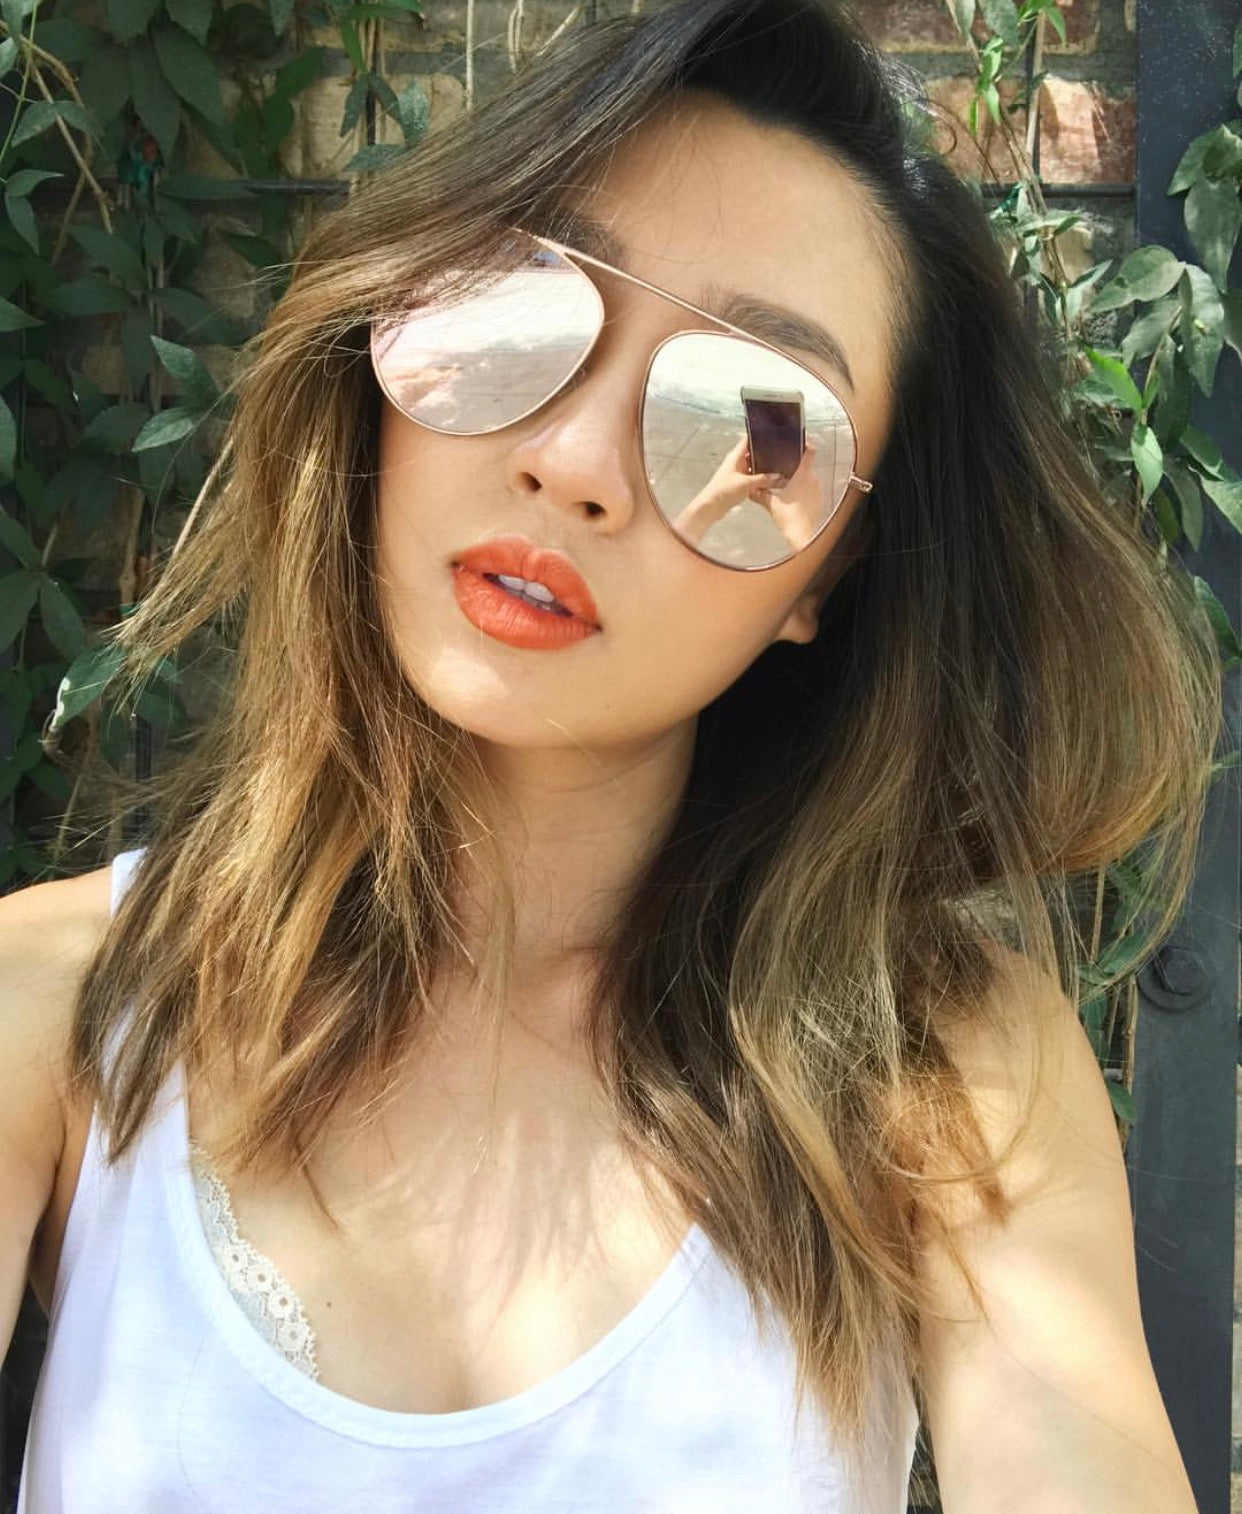 Hair and Makeup Artist and Owner of Pallete Studios Yuri Sinata wears REVE by RENE glimpse aviator sunglasses